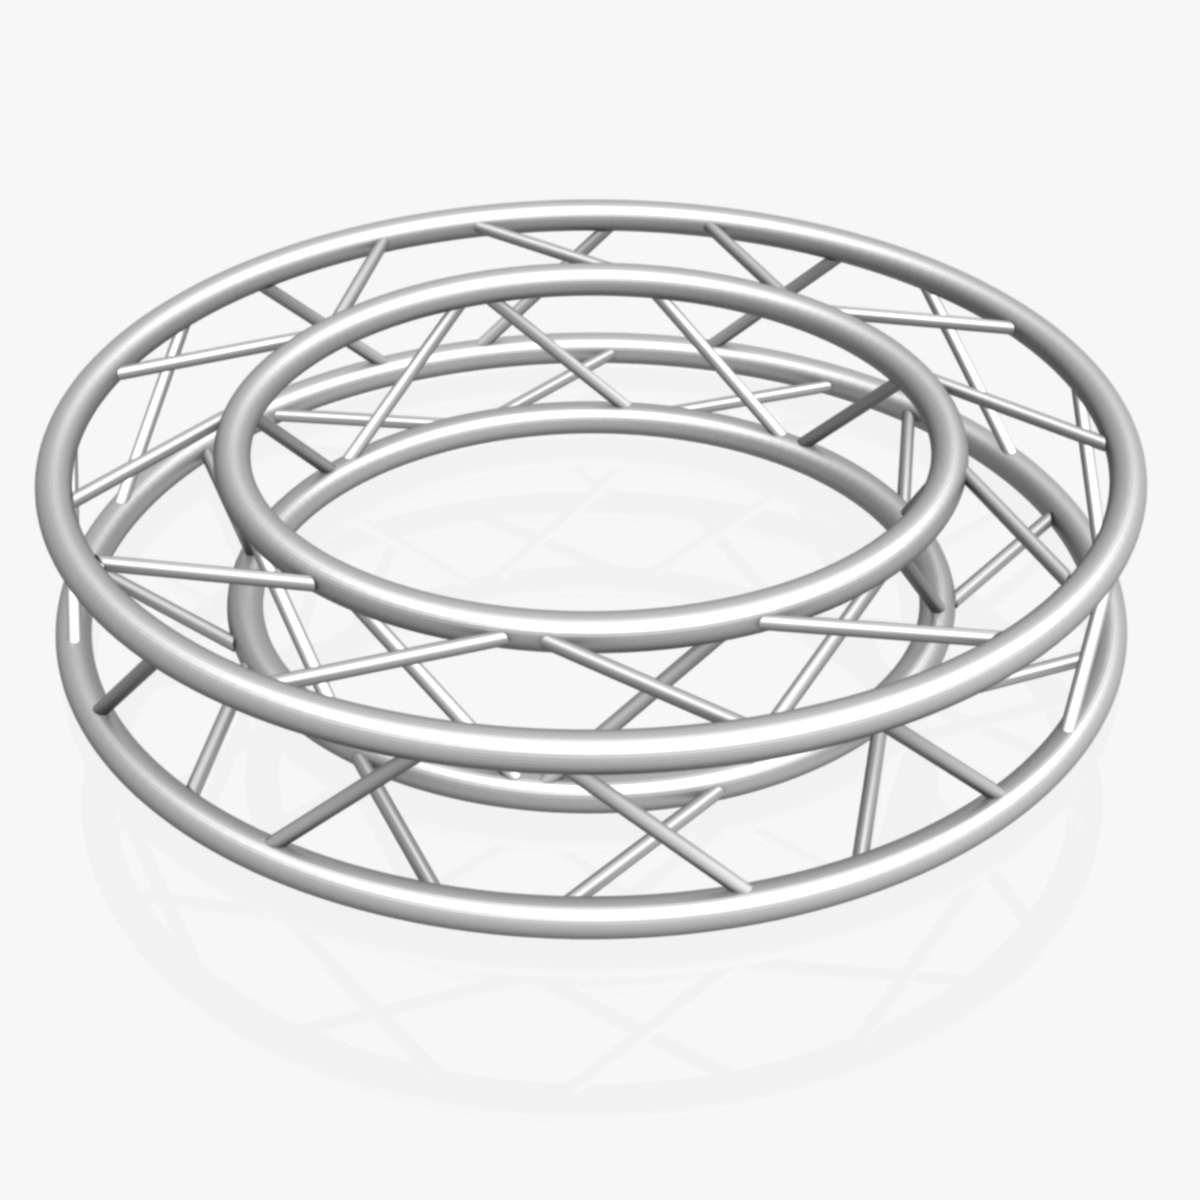 circle square truss full diameter 150cm 3d model 3ds max fbx c4d dae  obj 252292